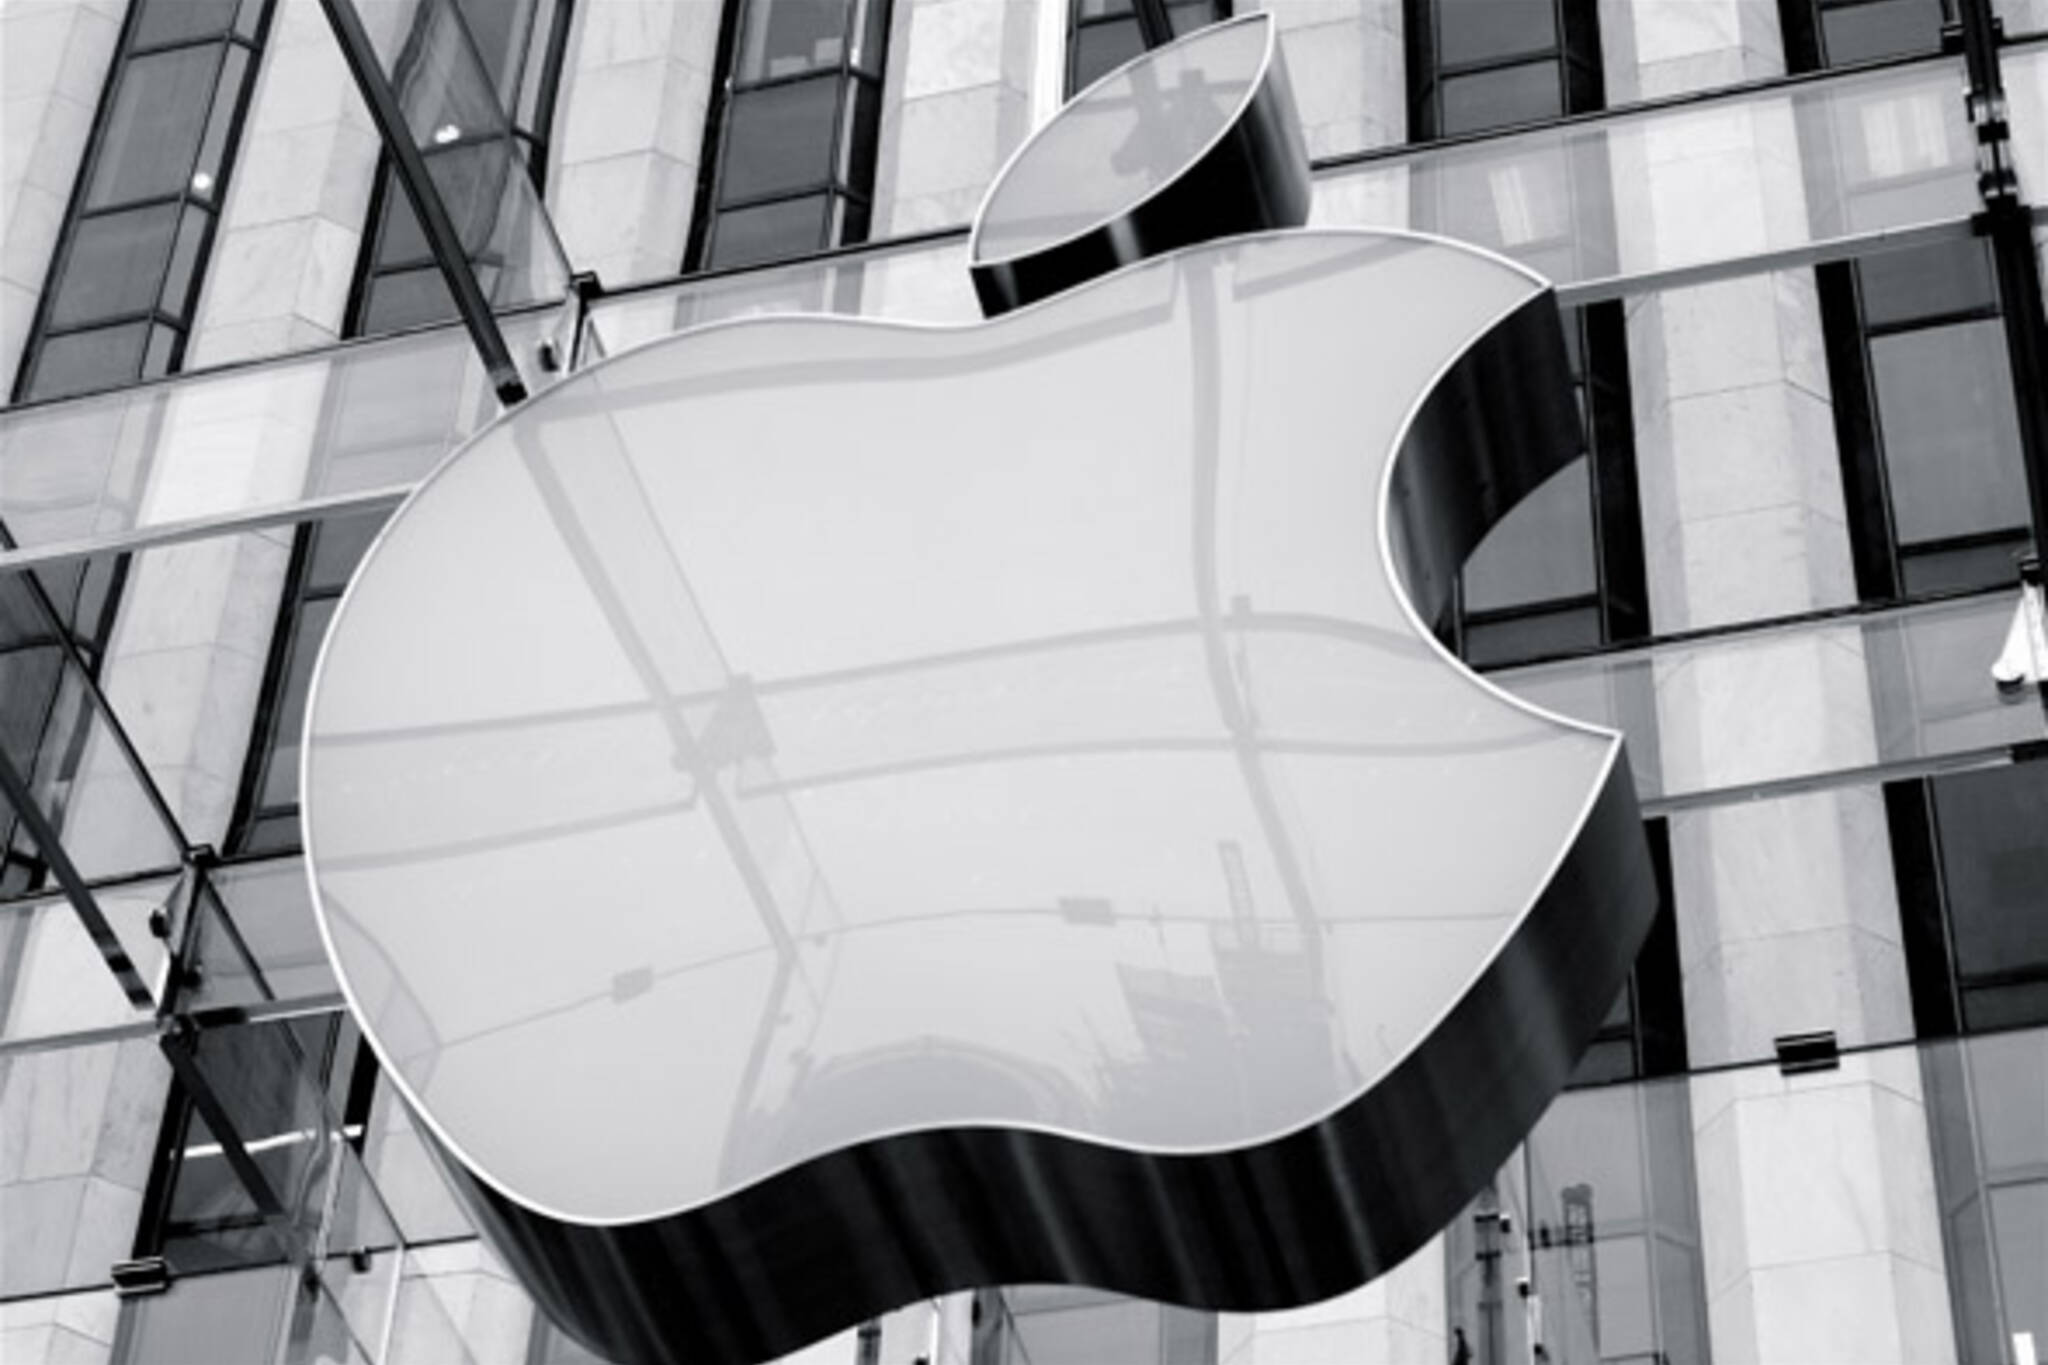 Apple opens new retail store at Fairview Mall in Toronto, Canada